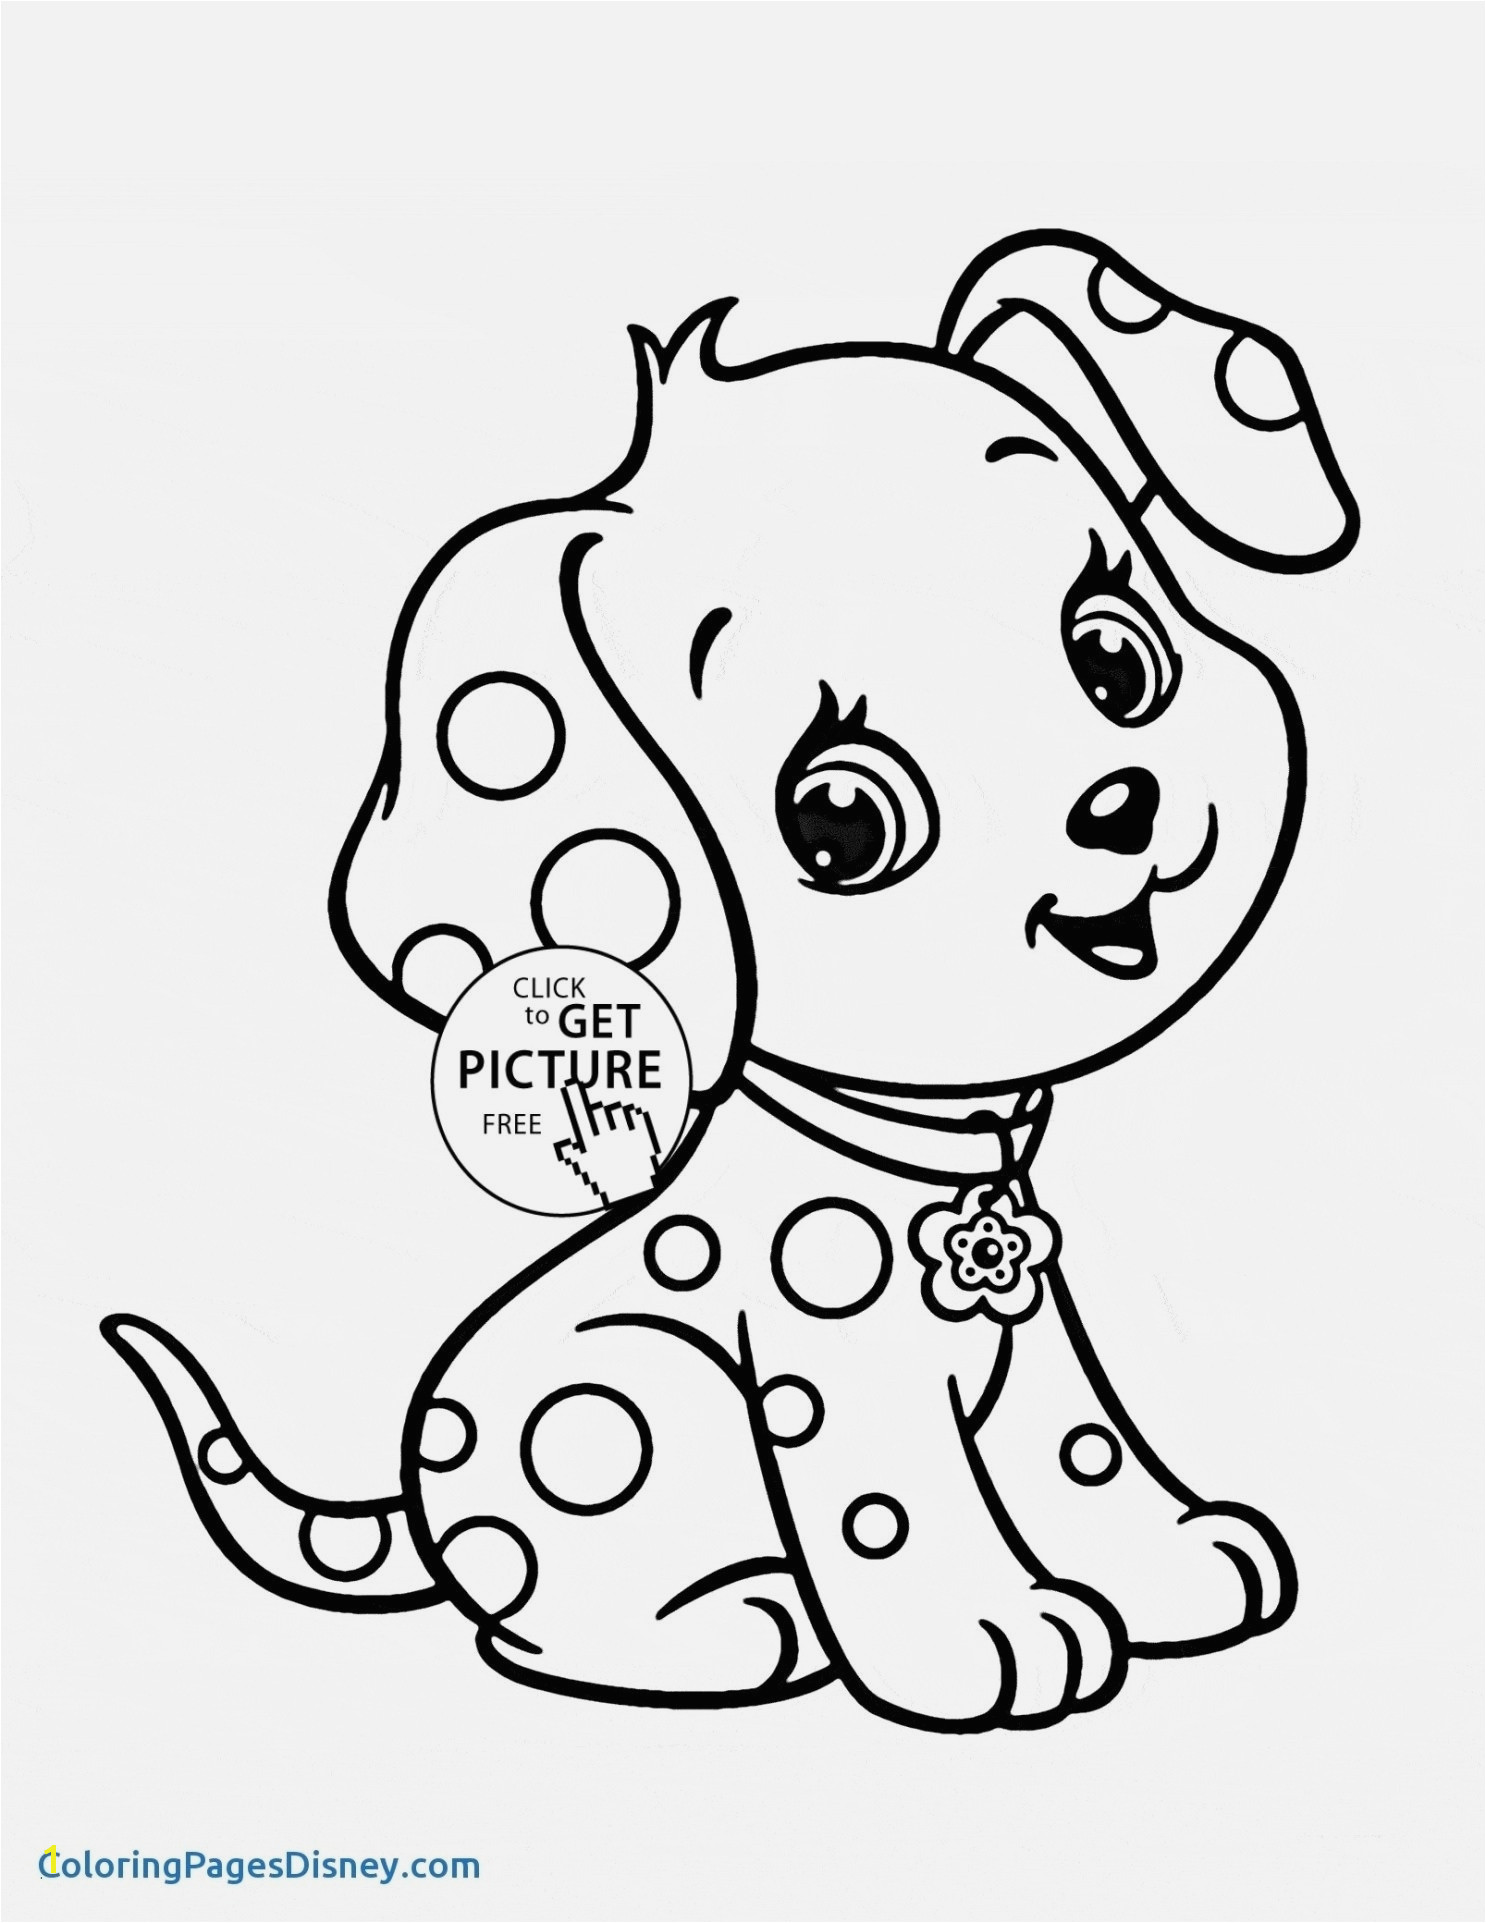 Free Halloween Coloring Pages Free Print Free Disney Halloween Coloring Pages Heathermarxgallery – Free